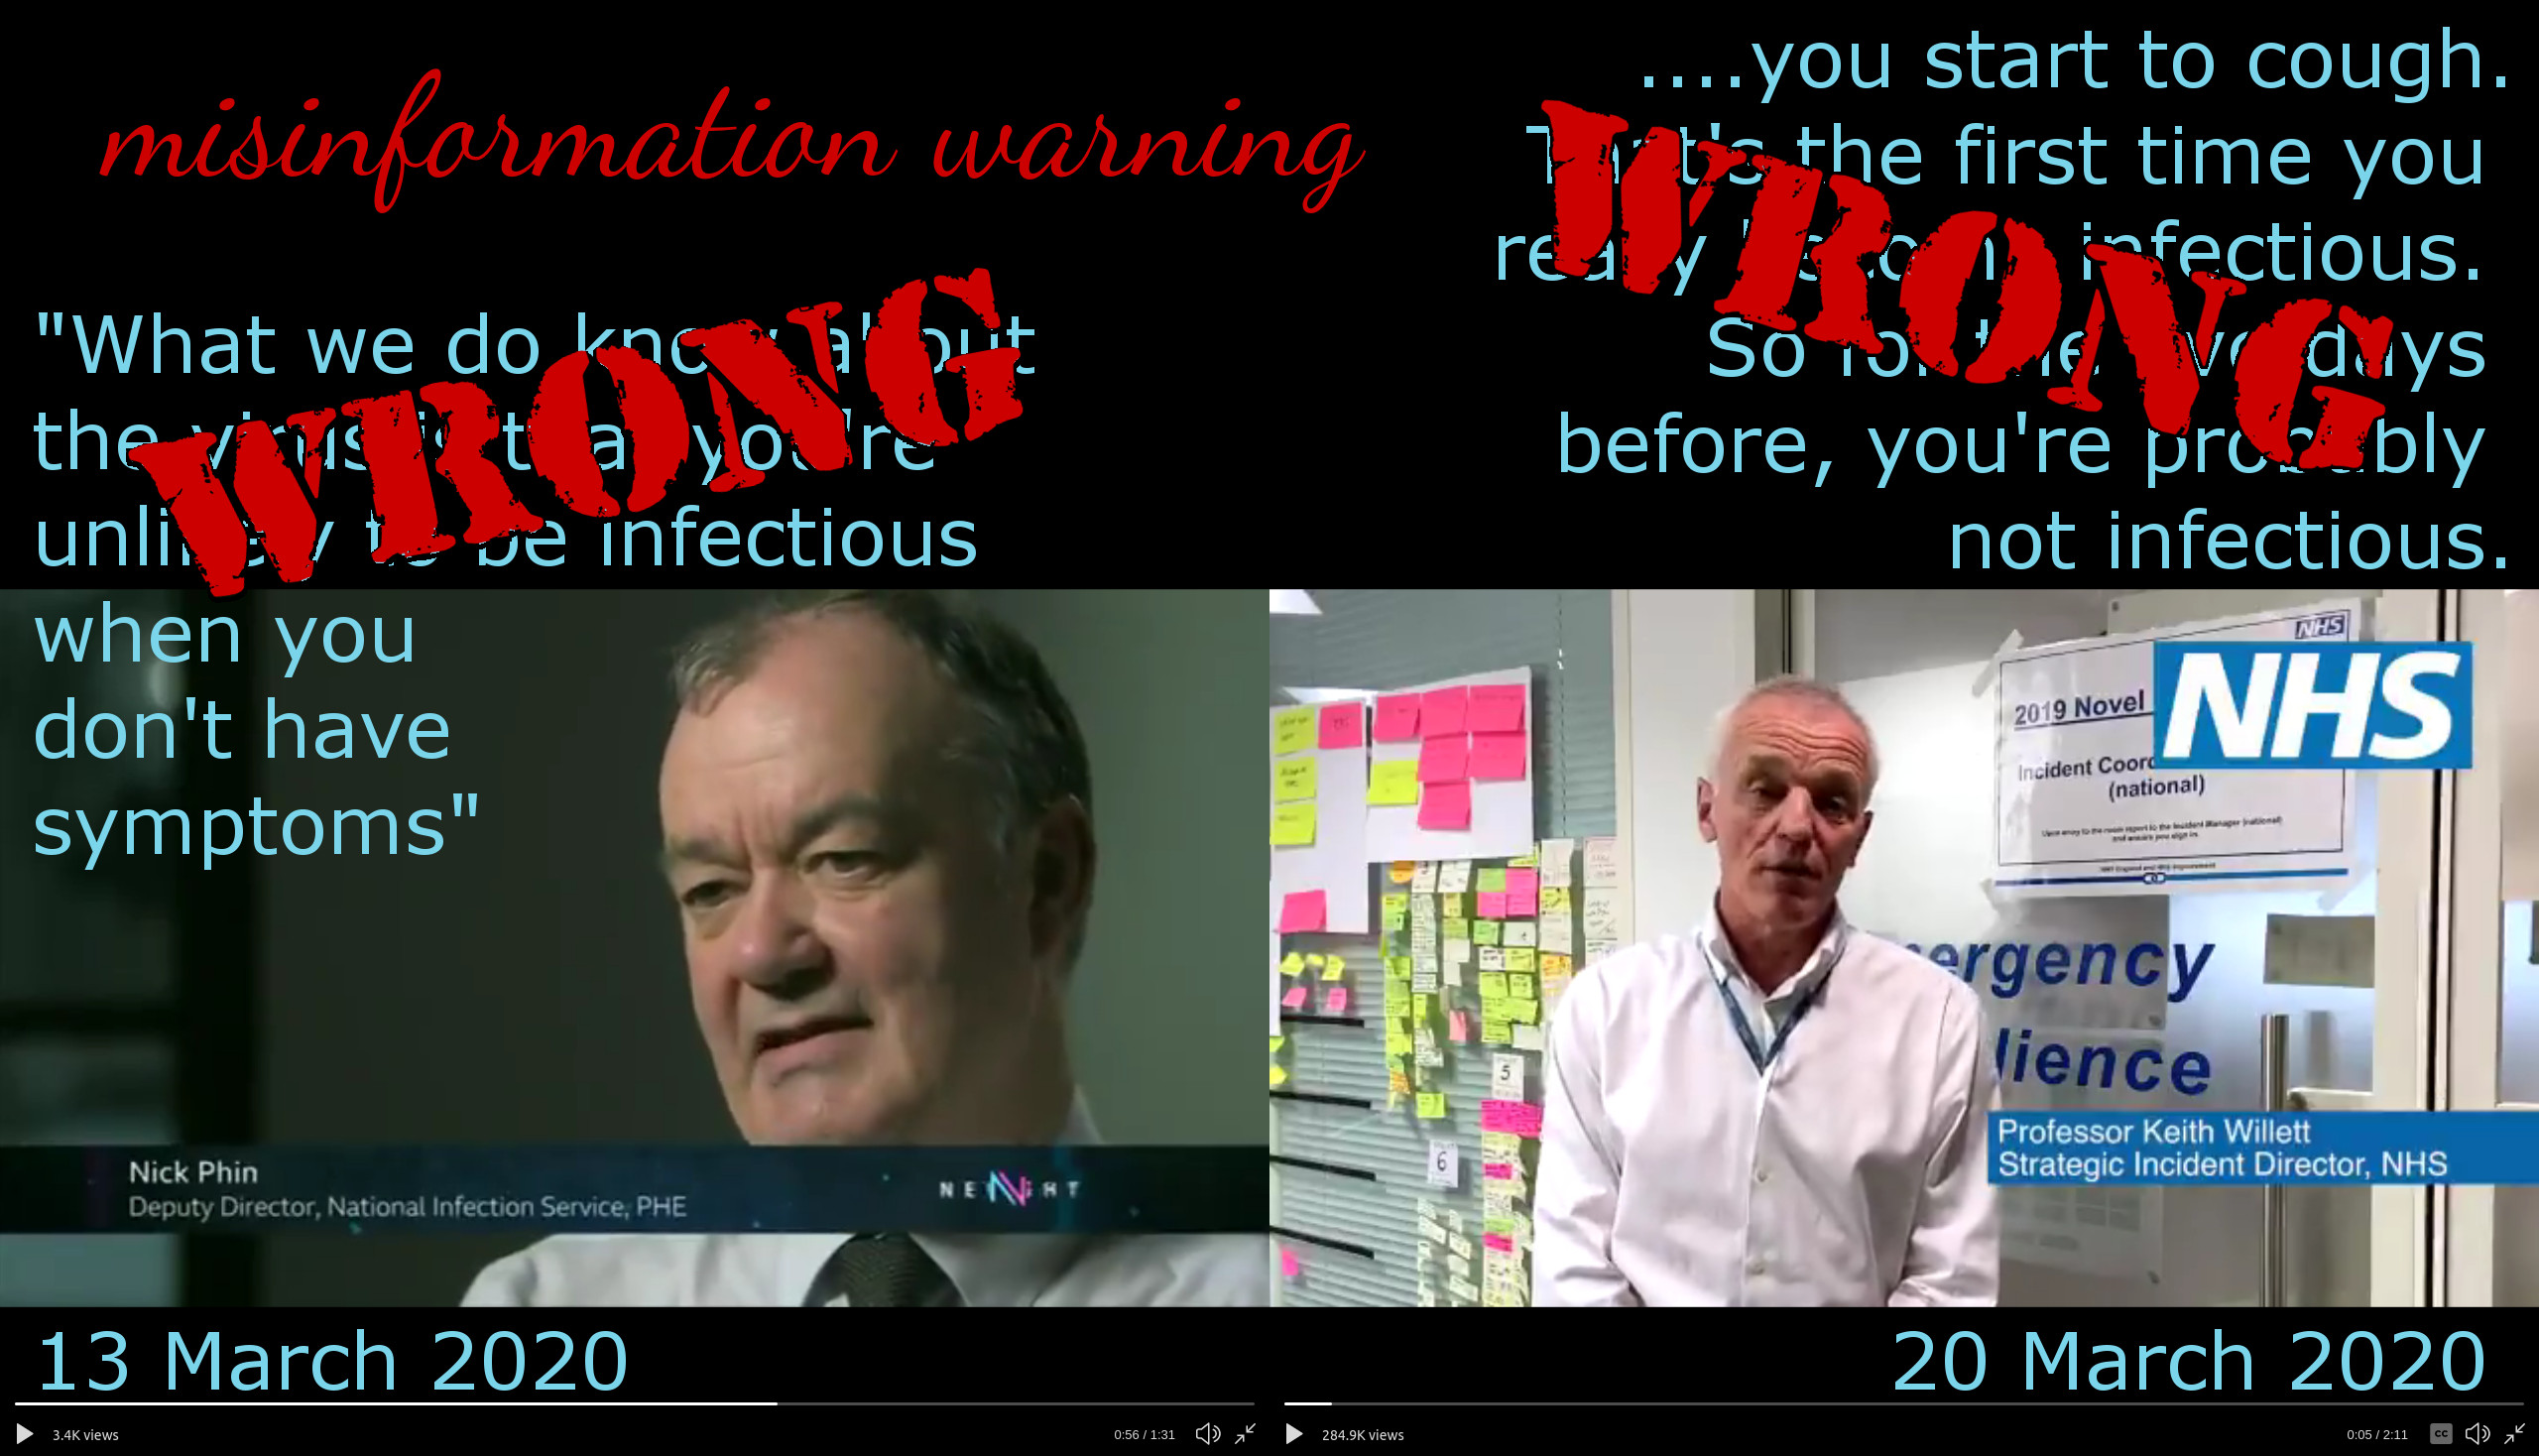 """Screenshots and text quotes from two videos, tagged """"WRONG"""". The header is """"misinformation warning""""."""